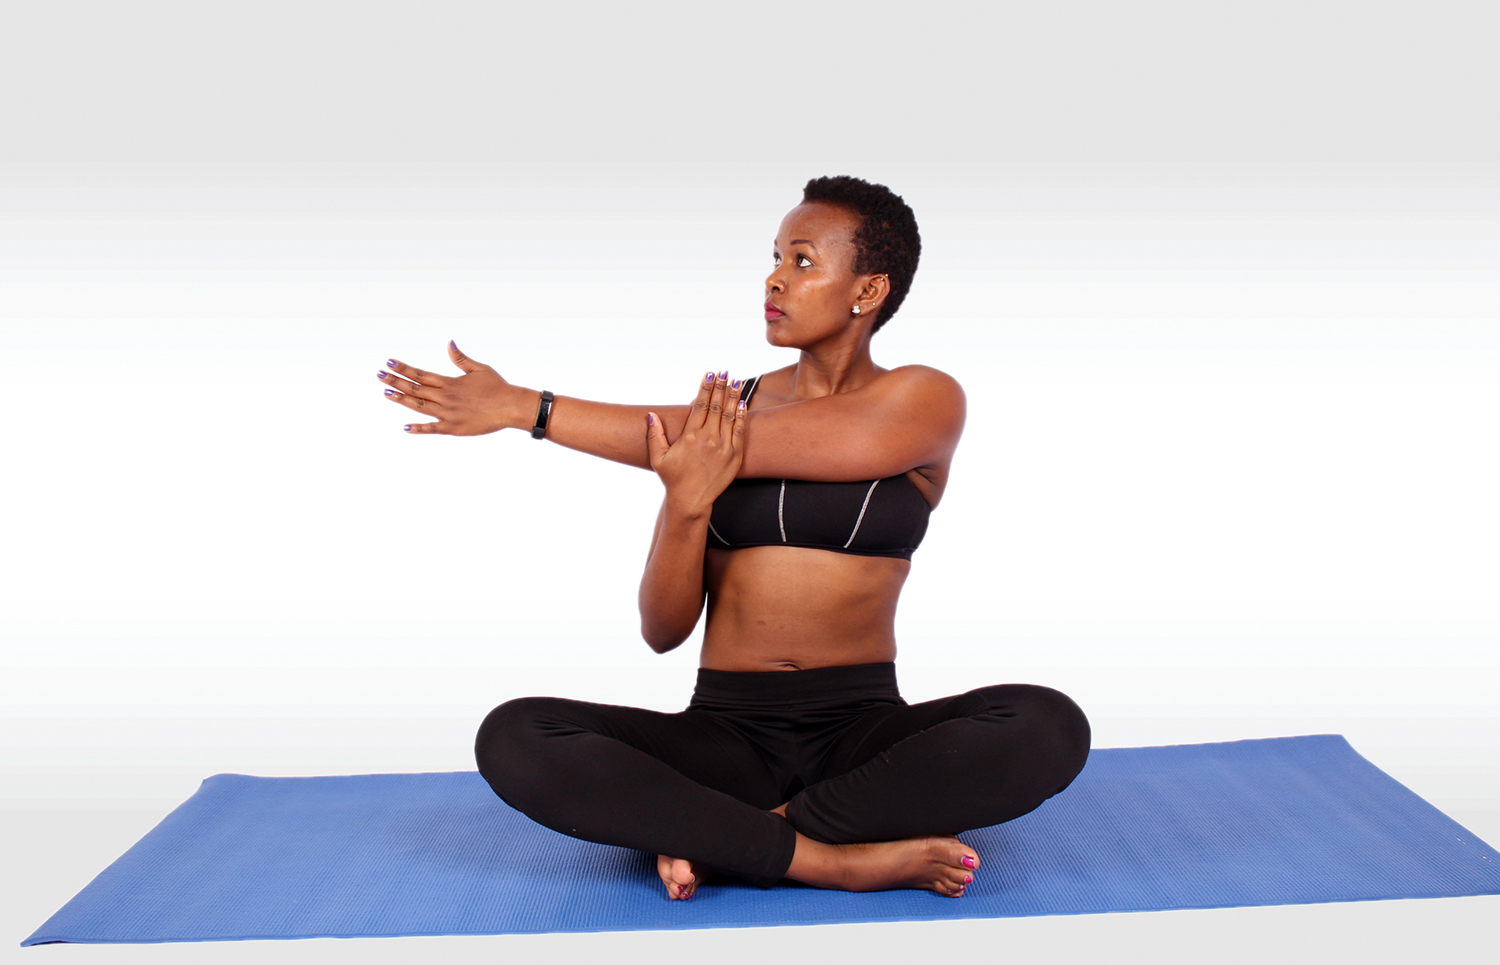 Young Sporty Woman Stretching Shoulder While Sitting in Yoga Pose